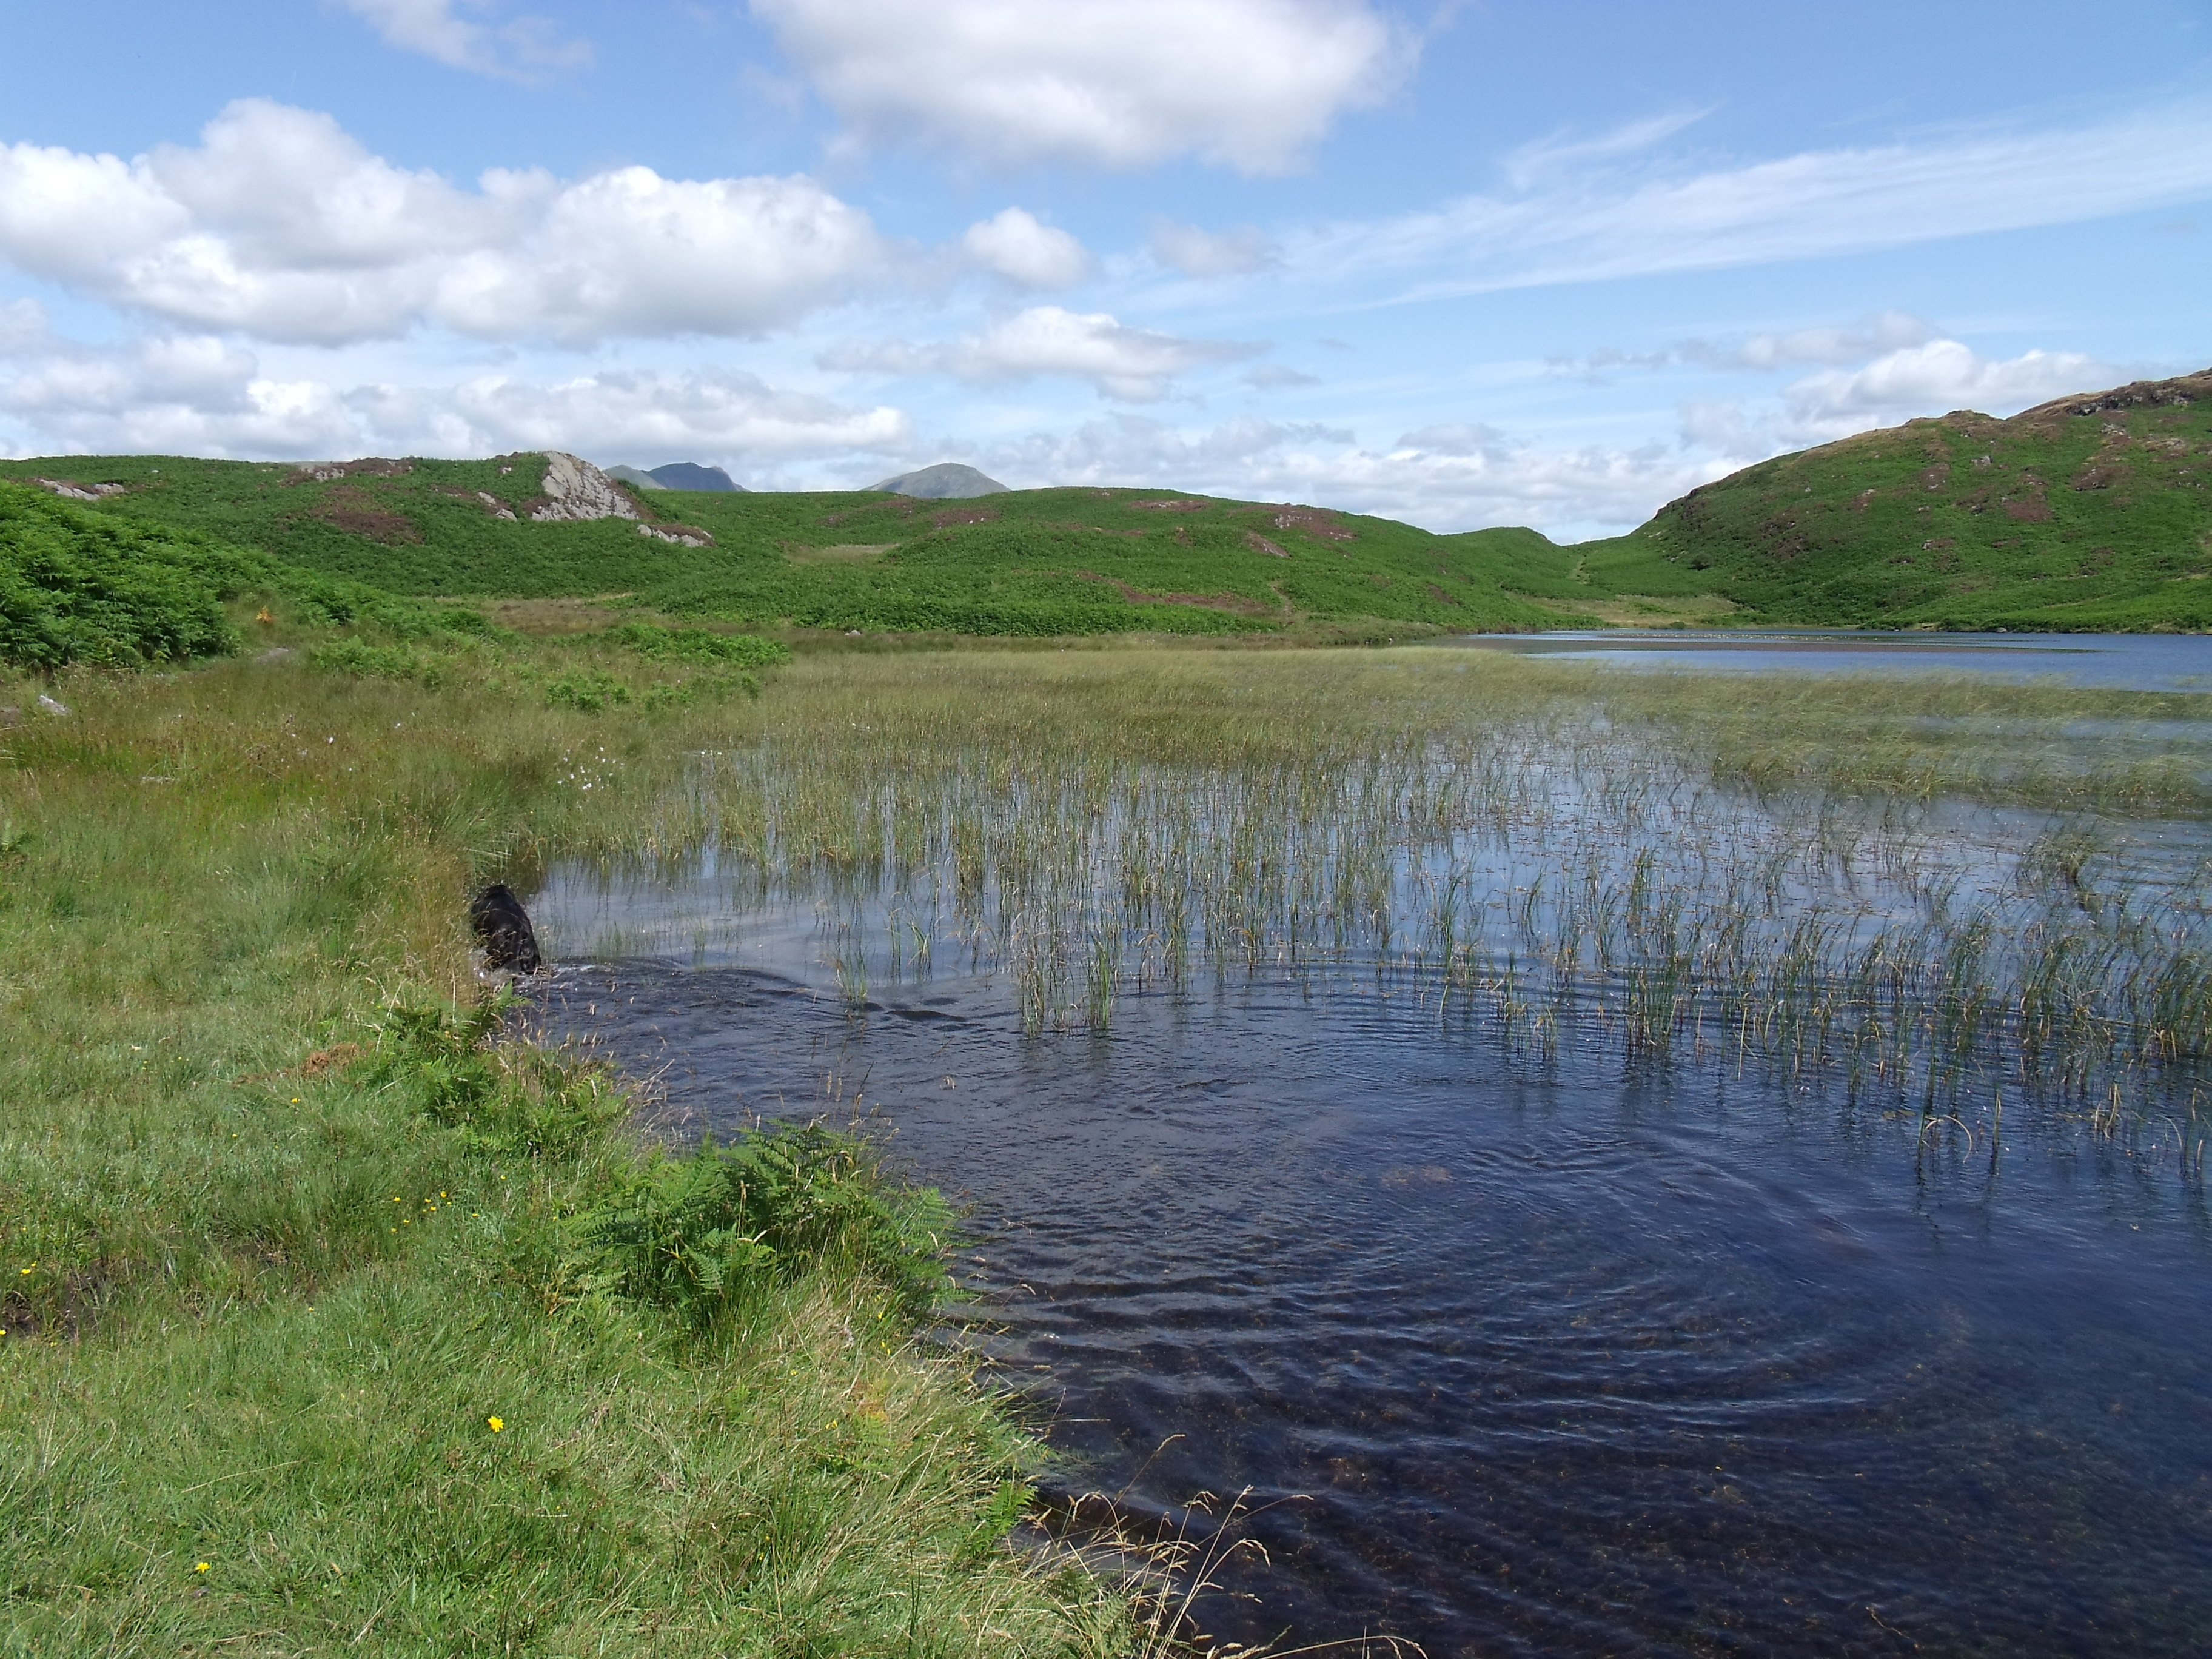 Beacon Tarn near Coniston is not accessable by road. We loved this little tarn tucked away in the fells.